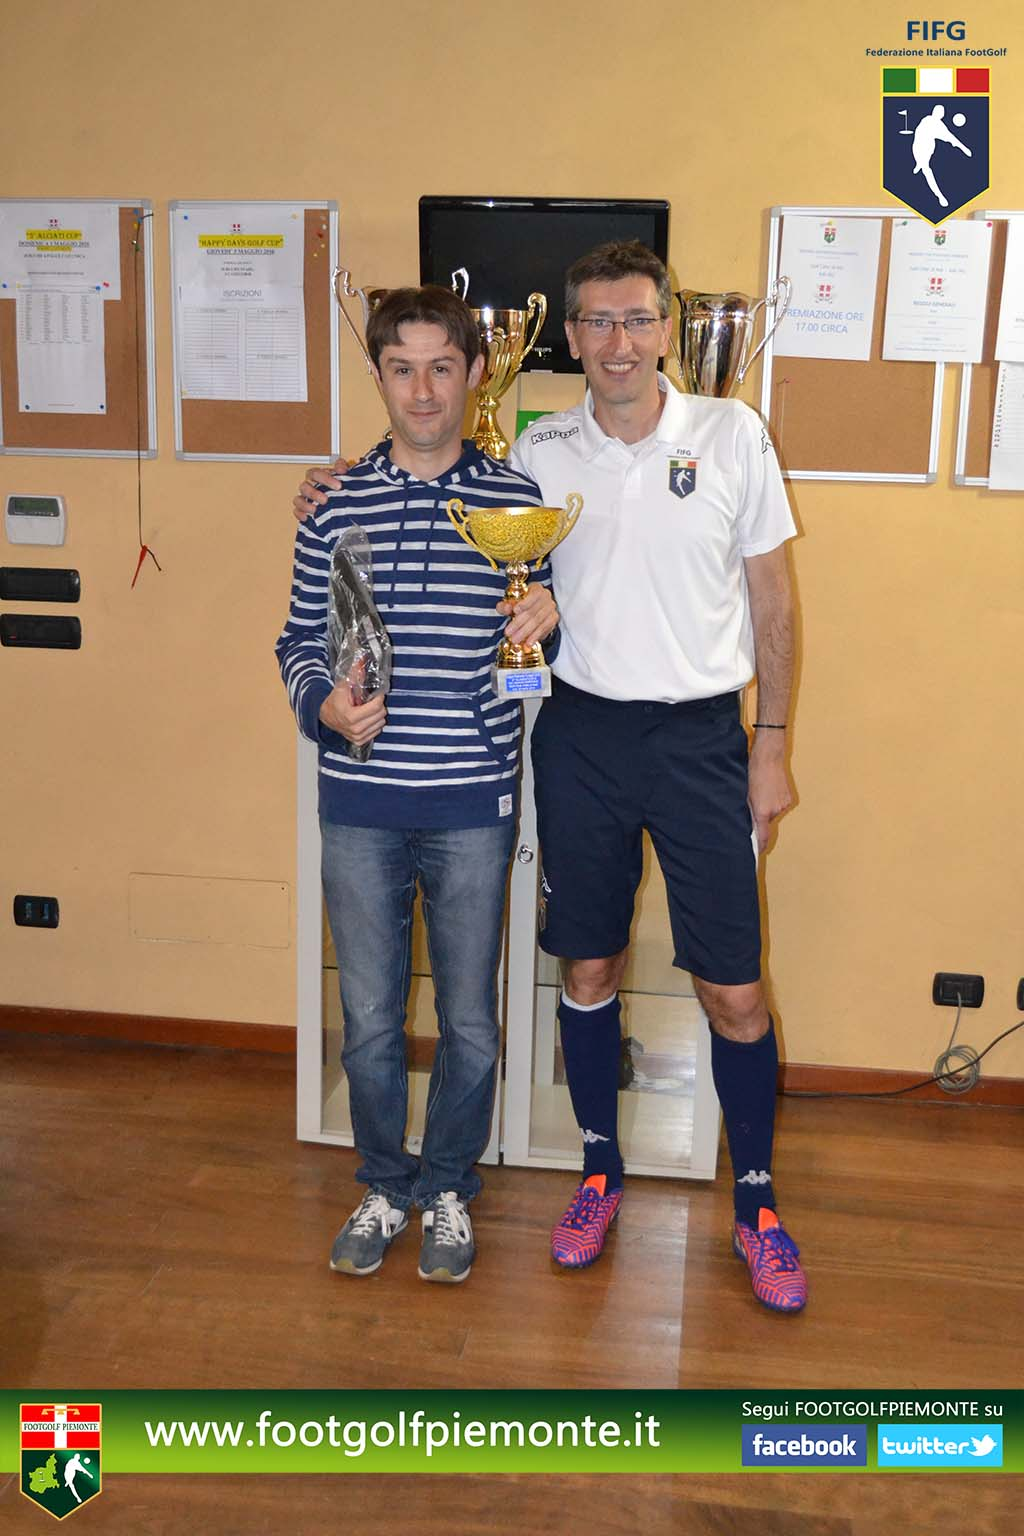 FOTO 9 Regions' Cup Footgolf Piemonte 2016 Golf Città di Asti (At) 30apr16-129